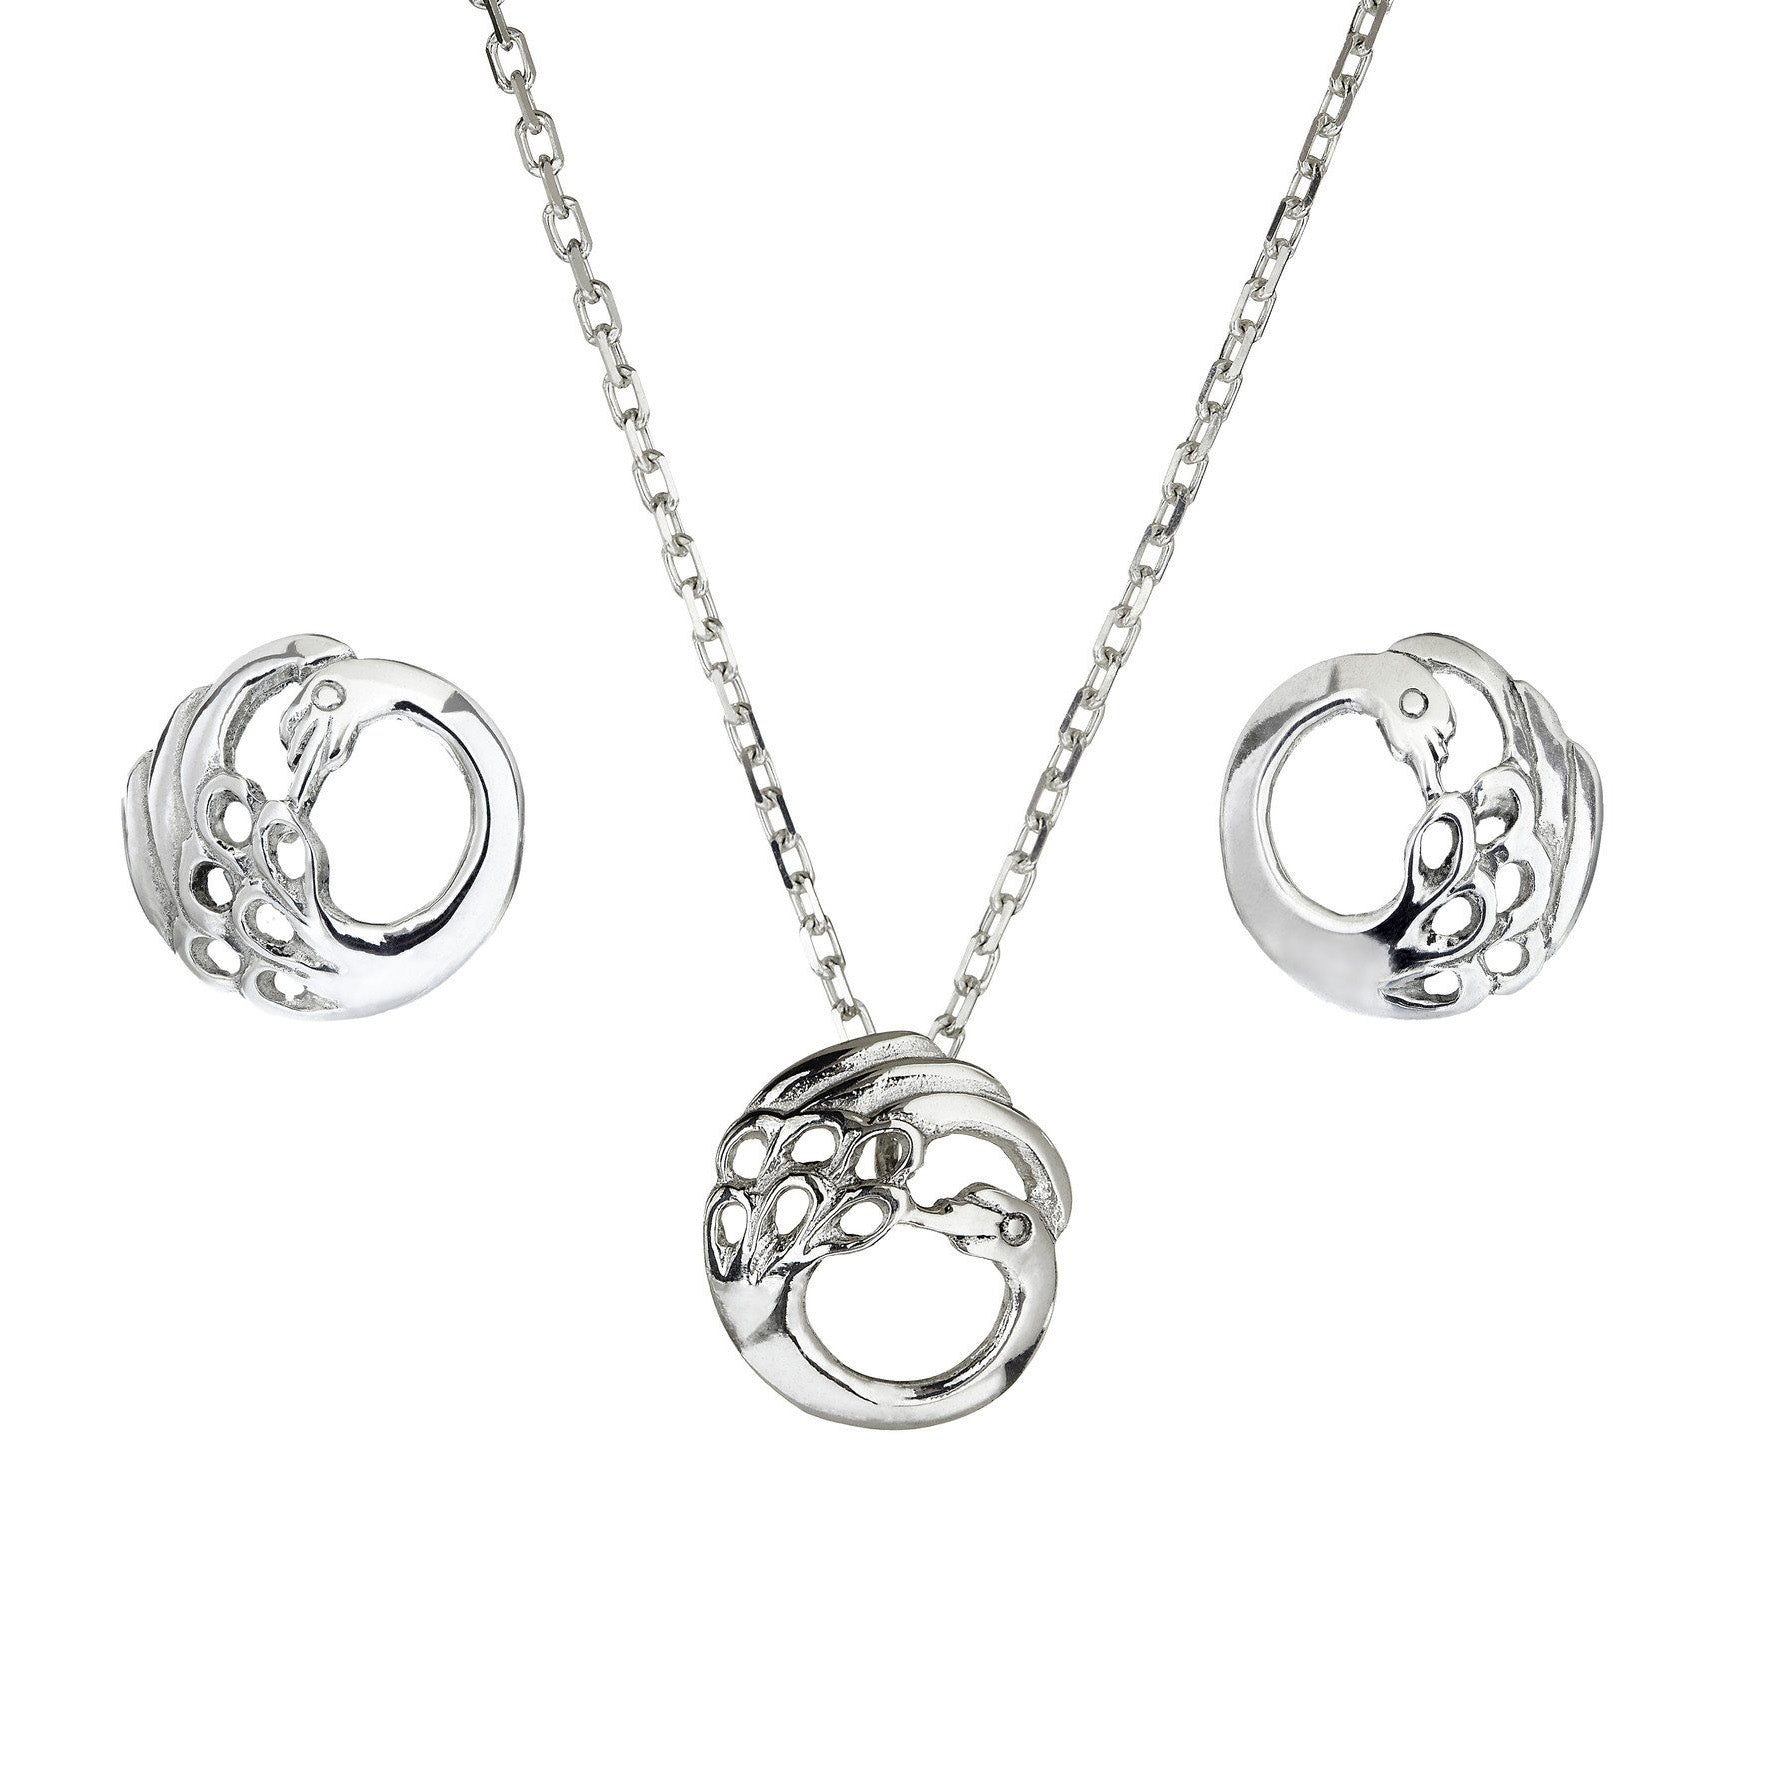 9e1153843 Swan Stud Earrings, Necklace & Pendant. A sterling silver Irish Jewellery  set.